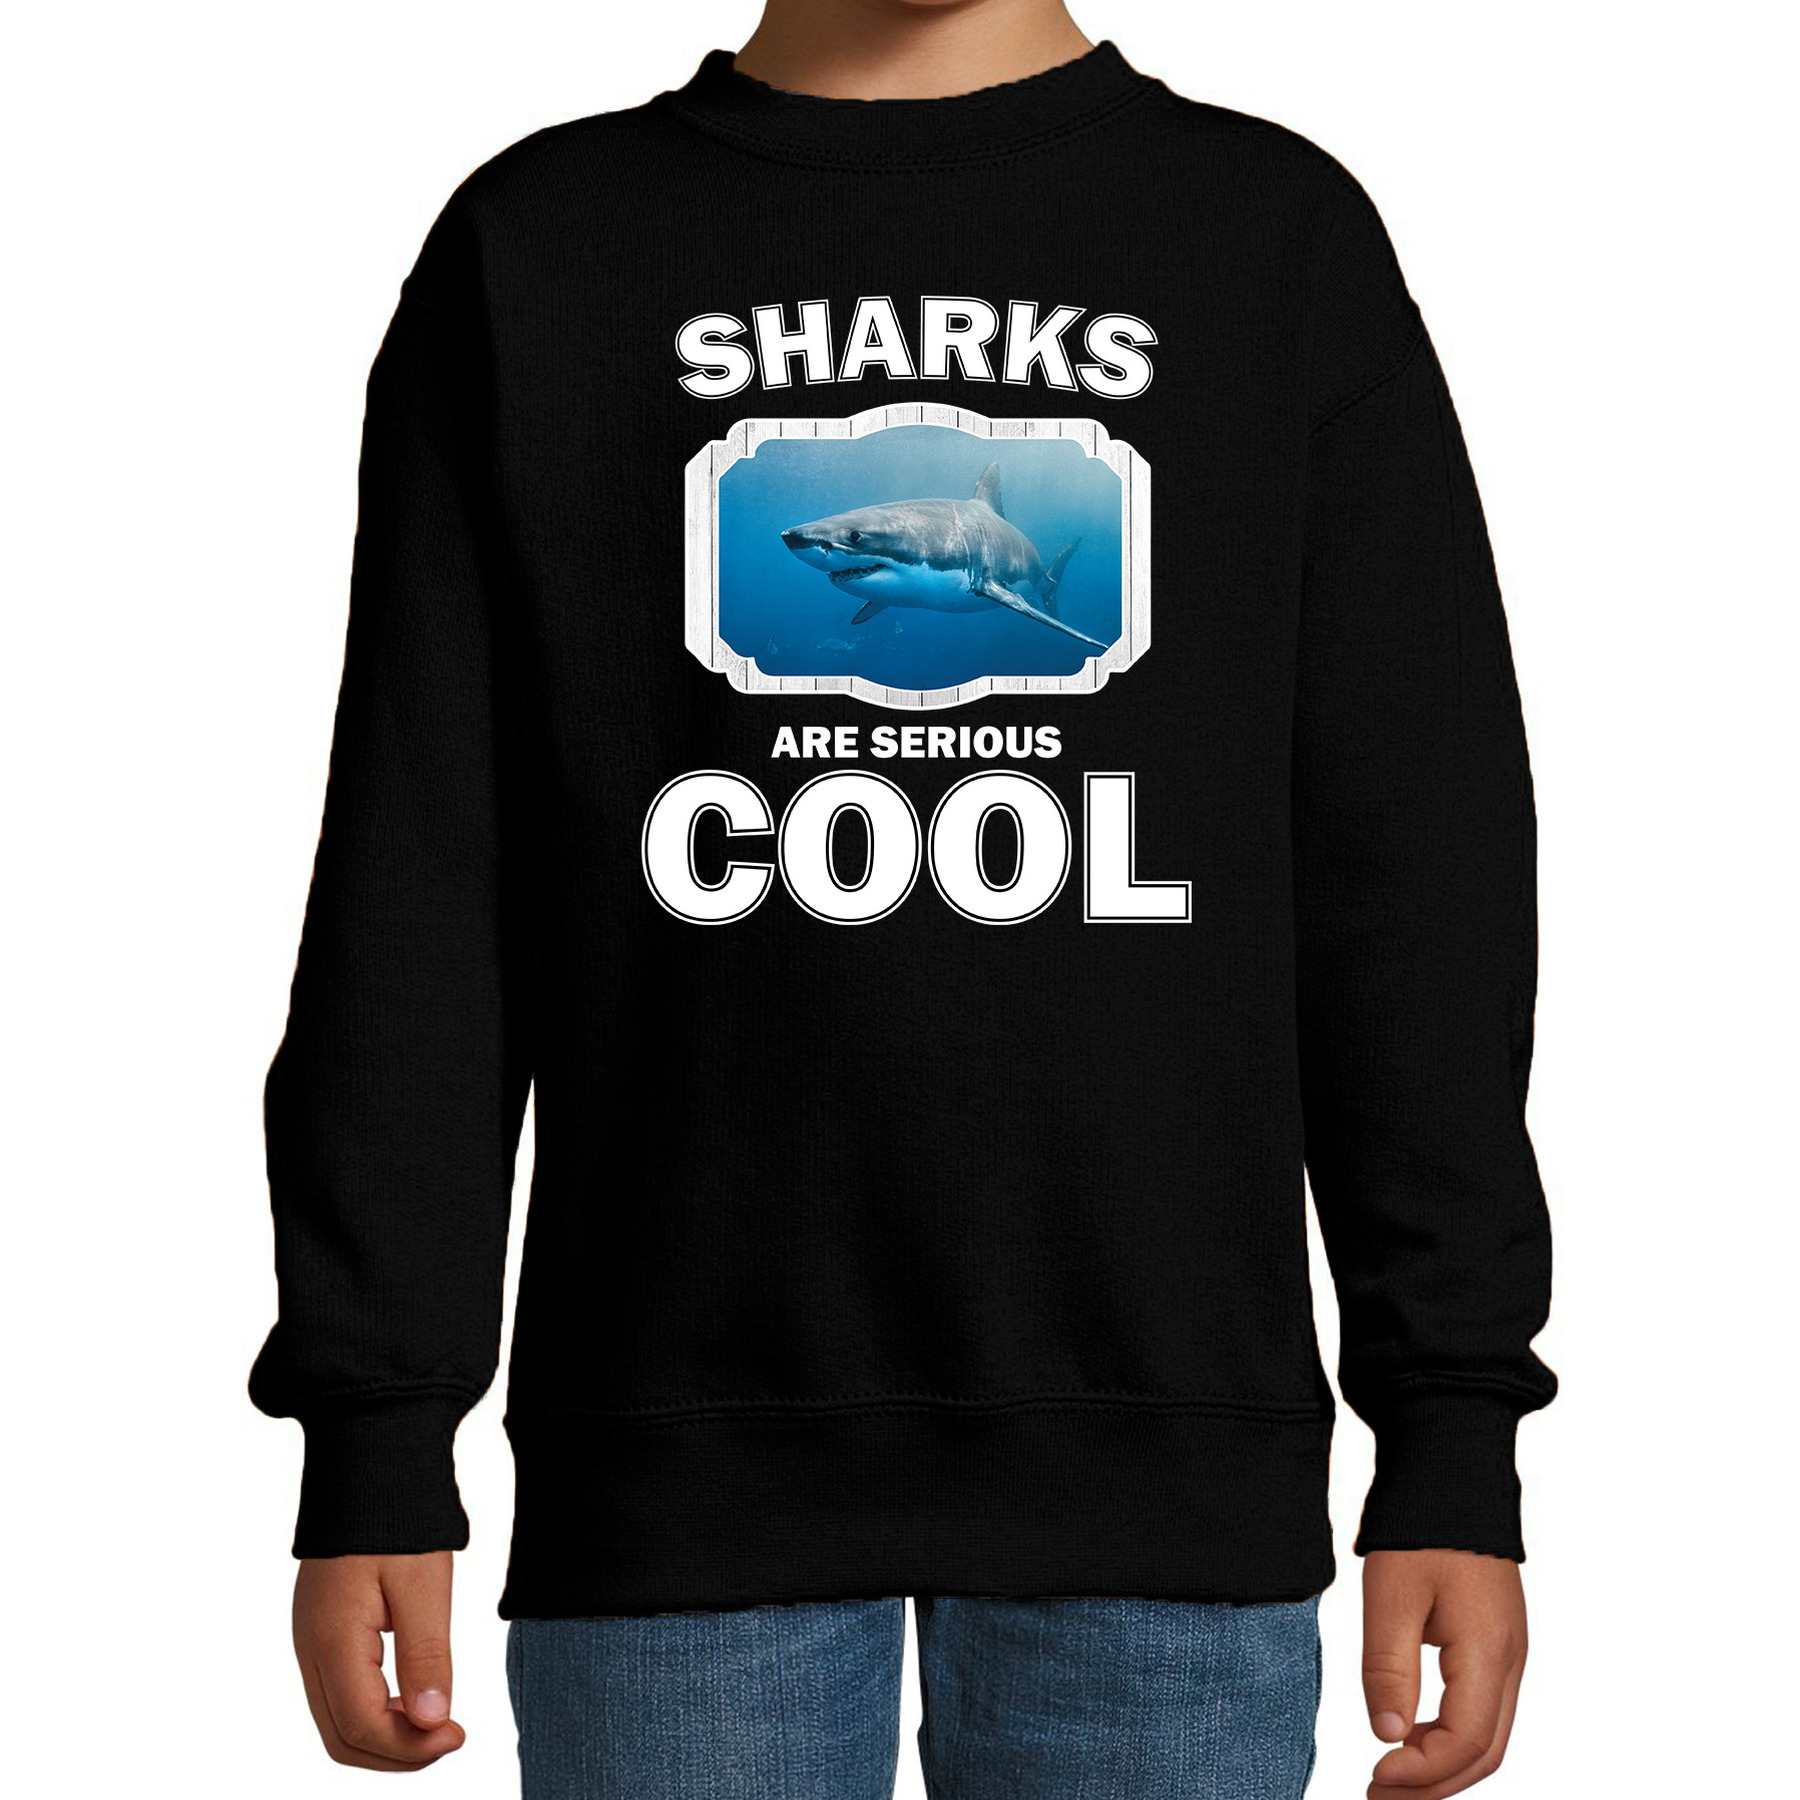 Sweater sharks are serious cool zwart kinderen - haaien/ haai trui